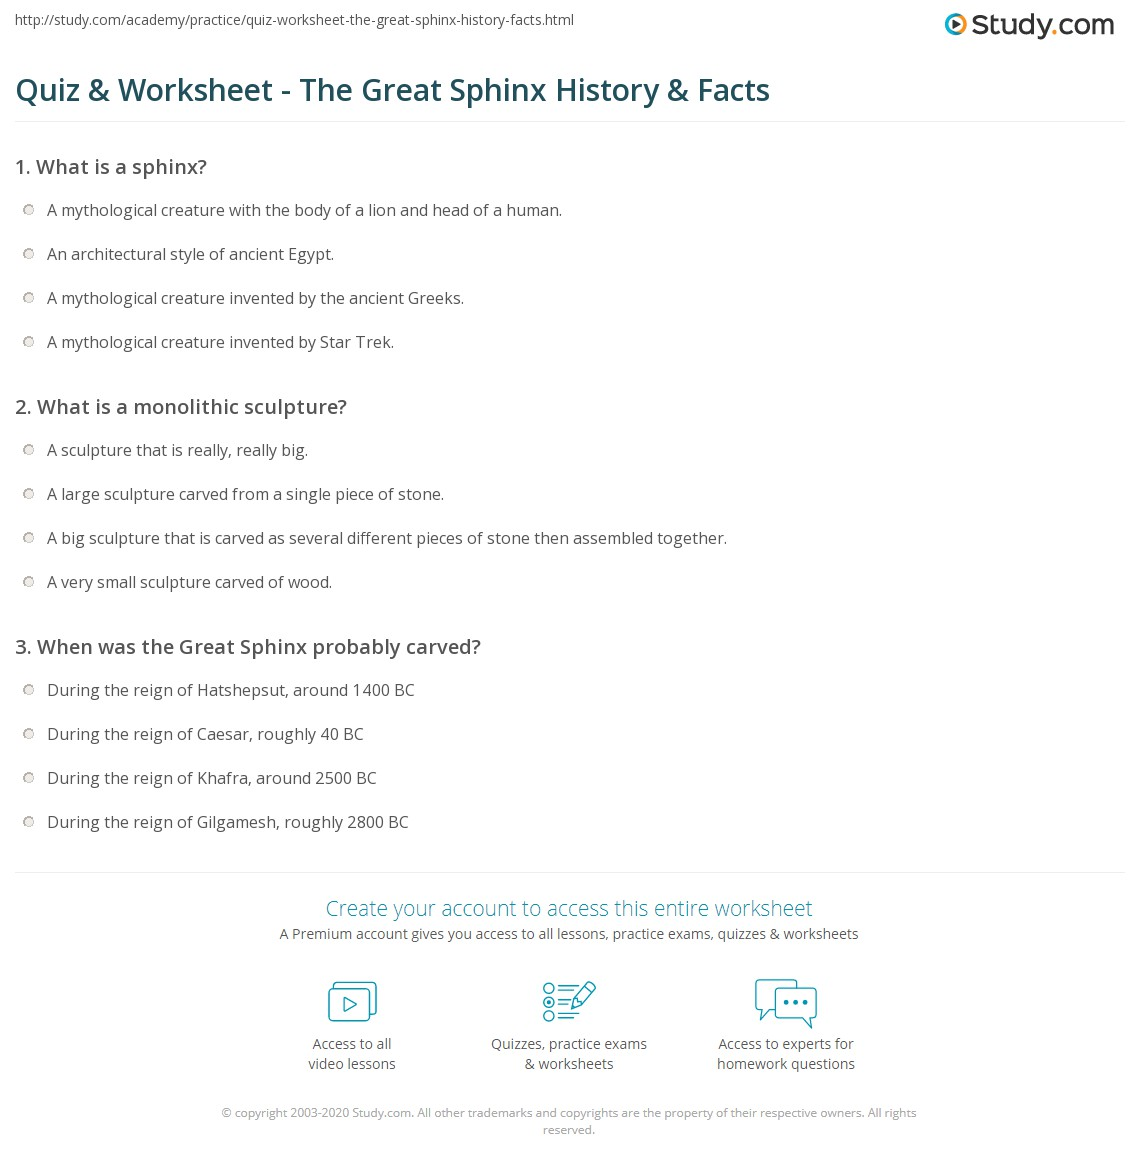 quiz worksheet the great sphinx history facts. Black Bedroom Furniture Sets. Home Design Ideas